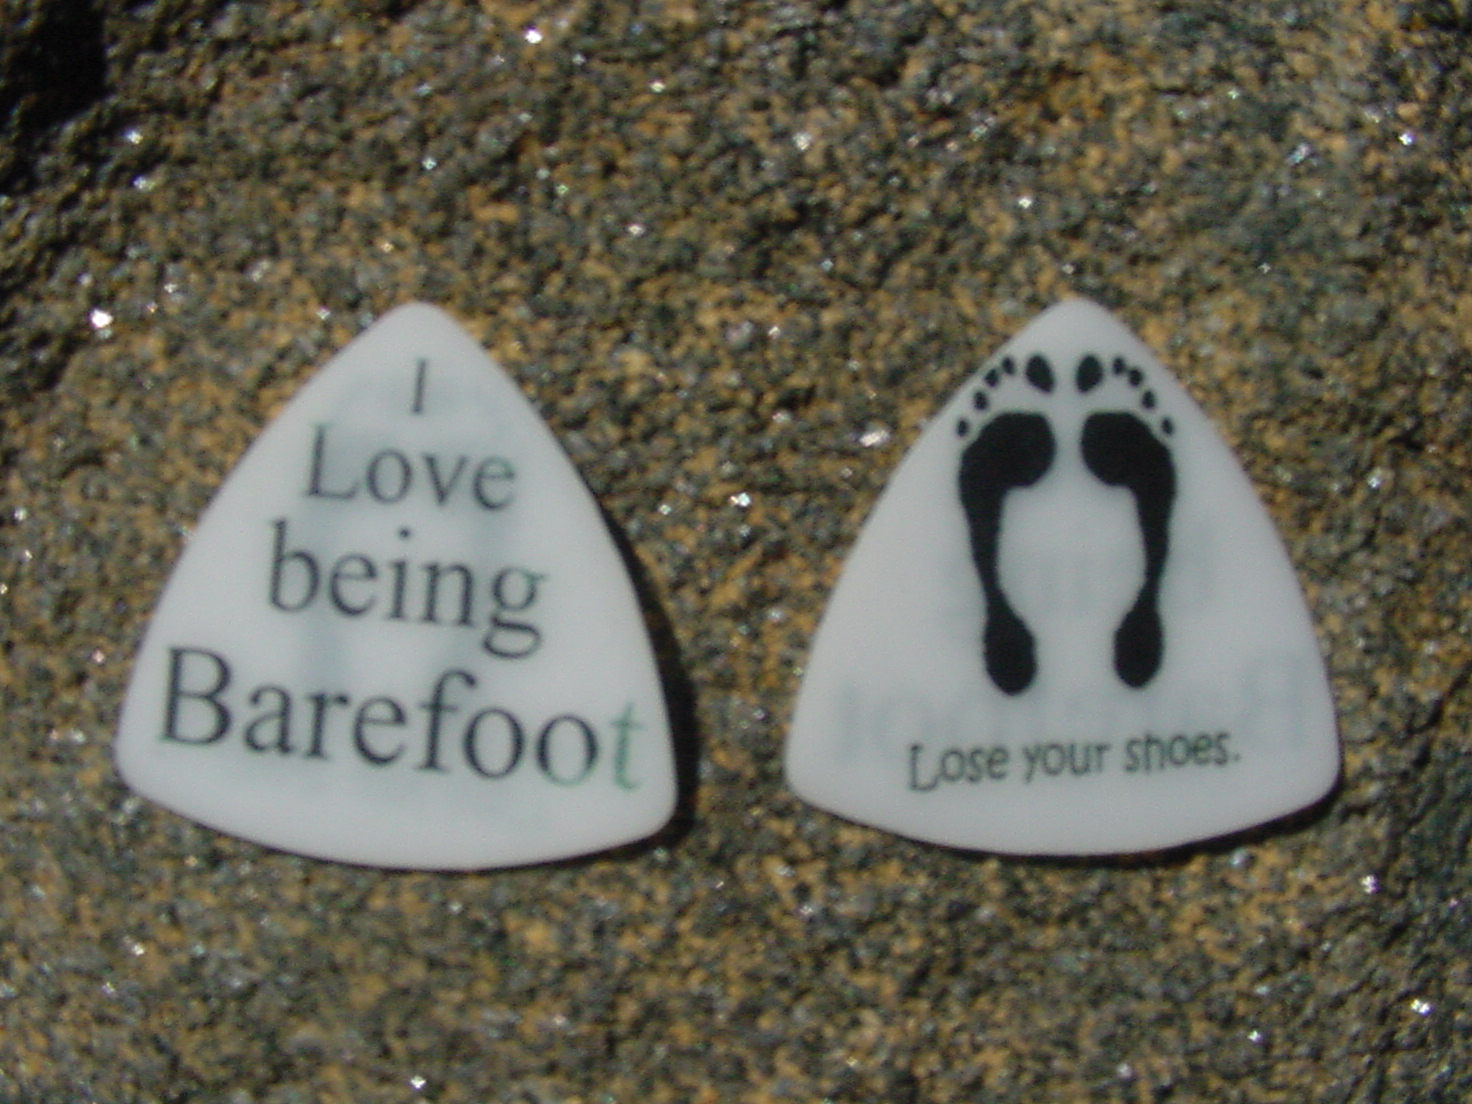 Barefoot Guitar Picks .8mm triangular acetal